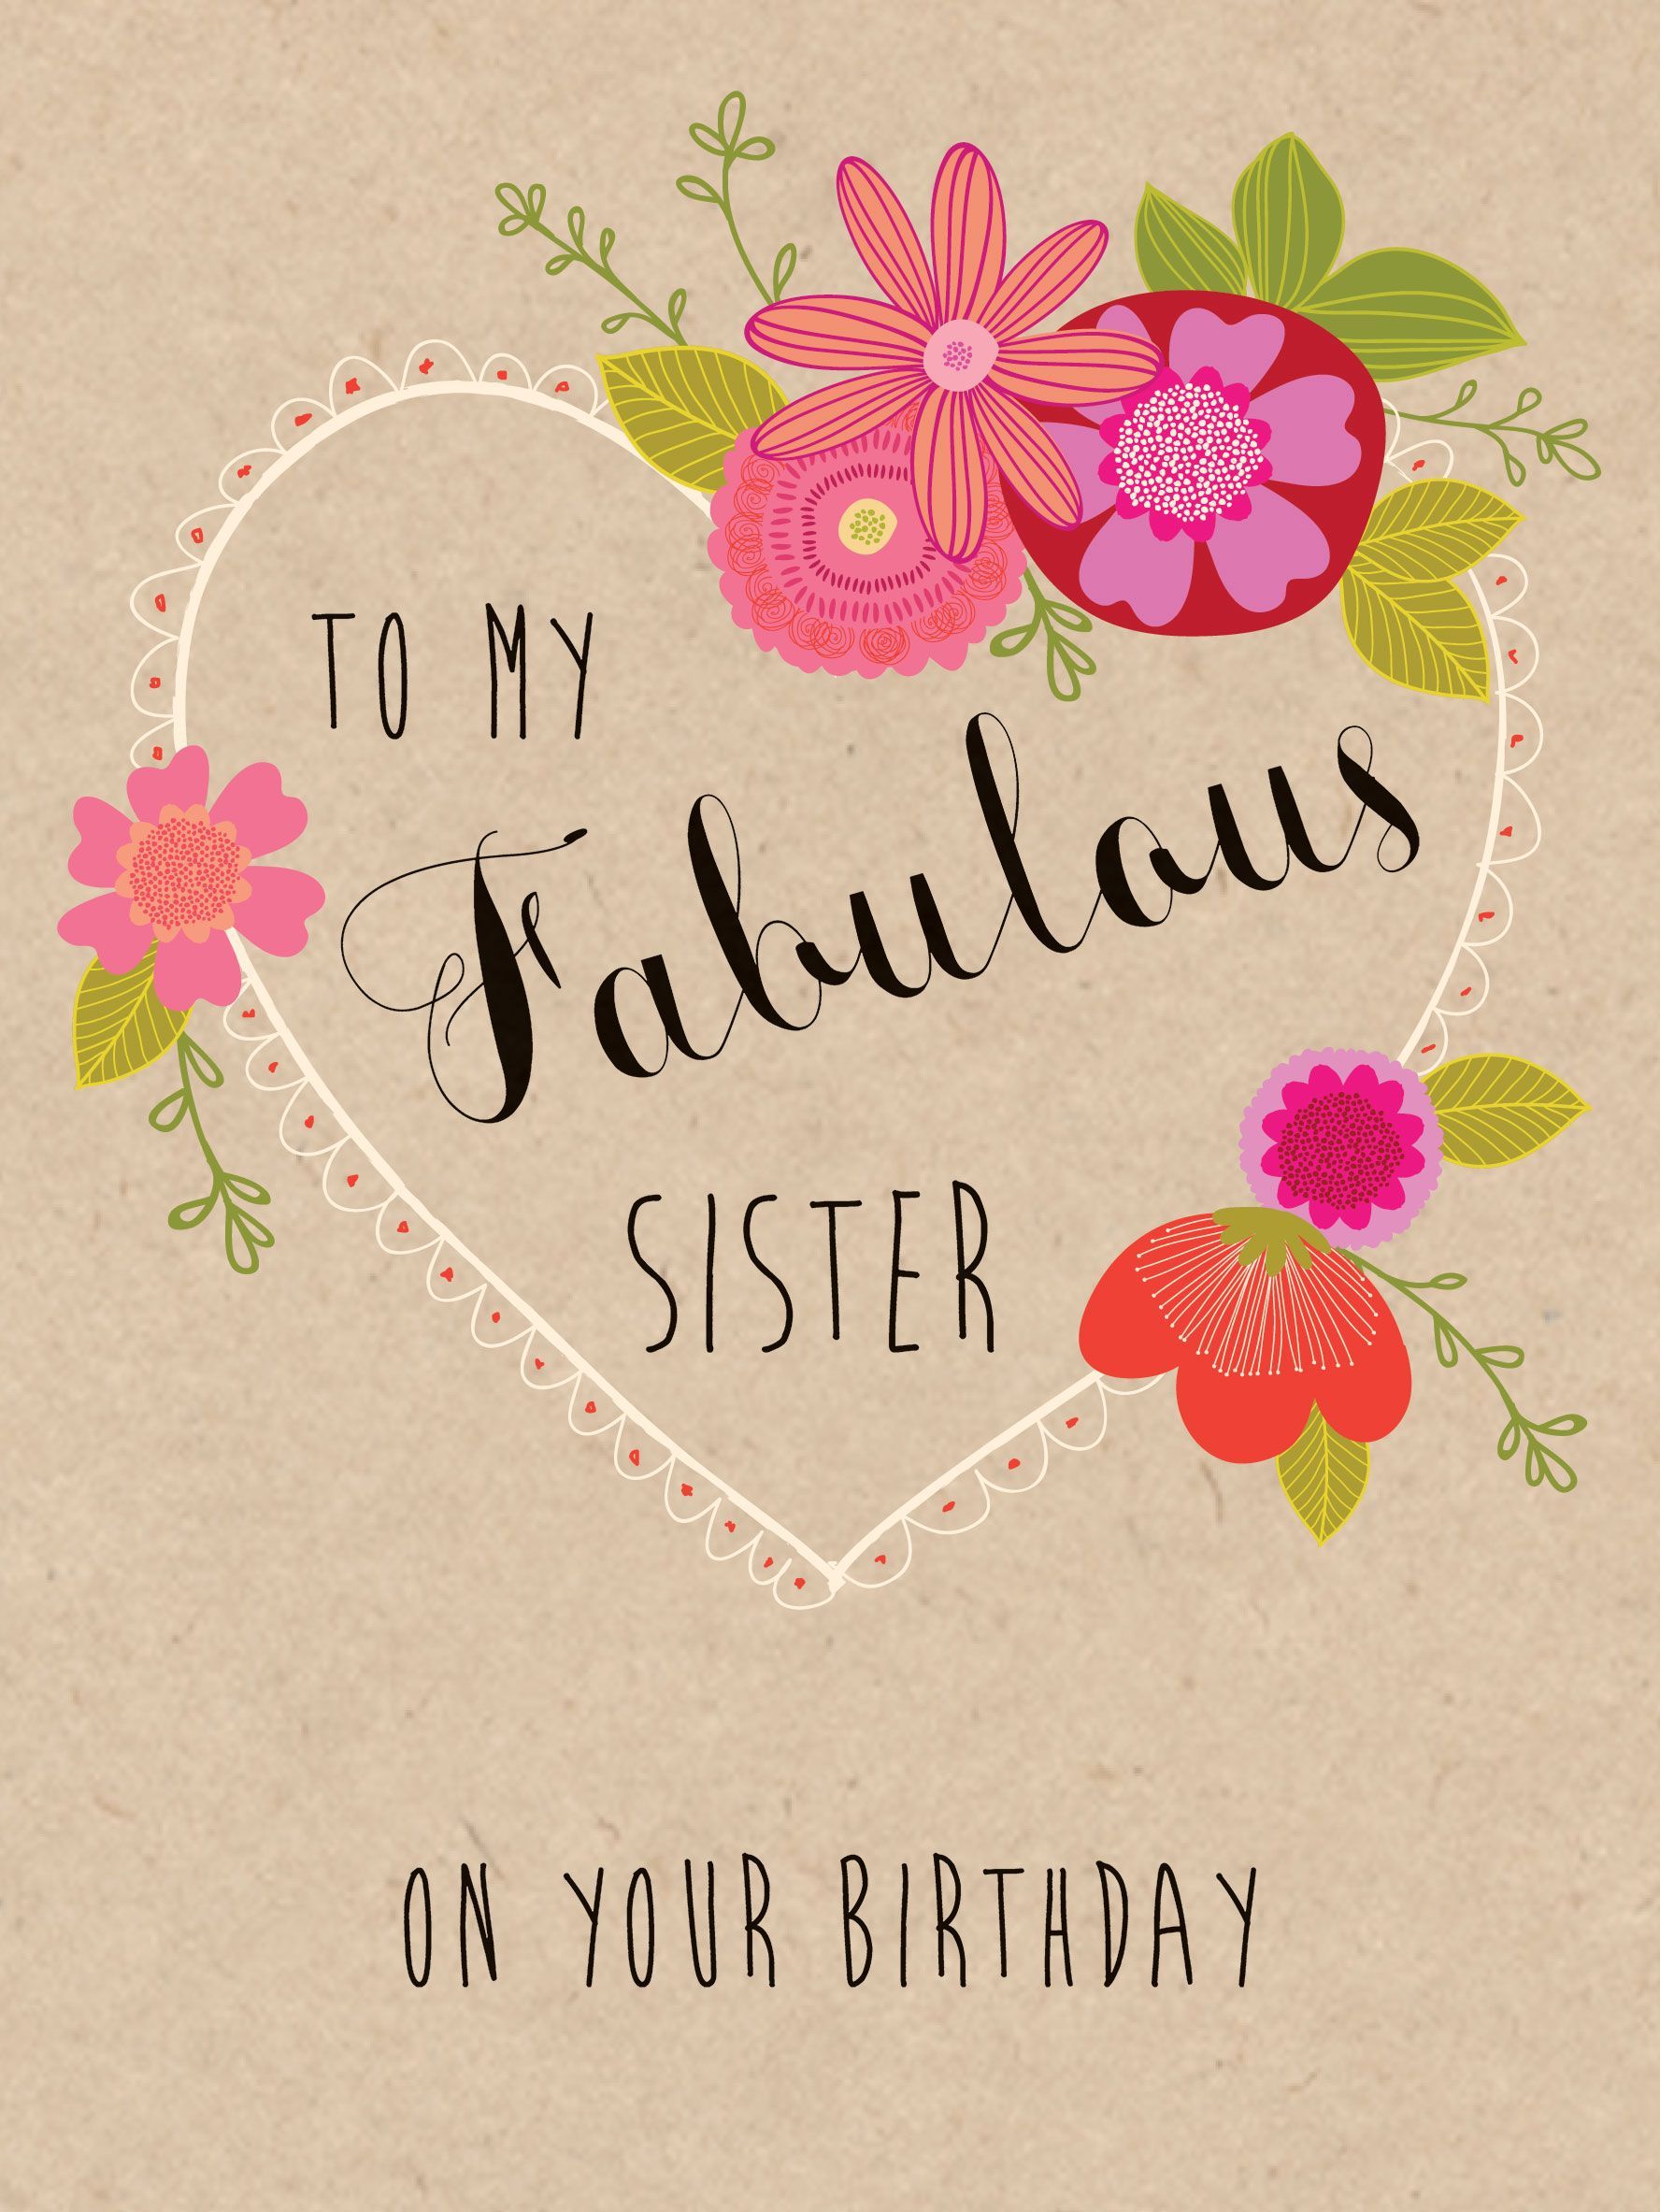 Pin By Thao Trang On My Saves In 2021 Happy Birthday Sister Funny Happy Birthday Cards Birthday Messages